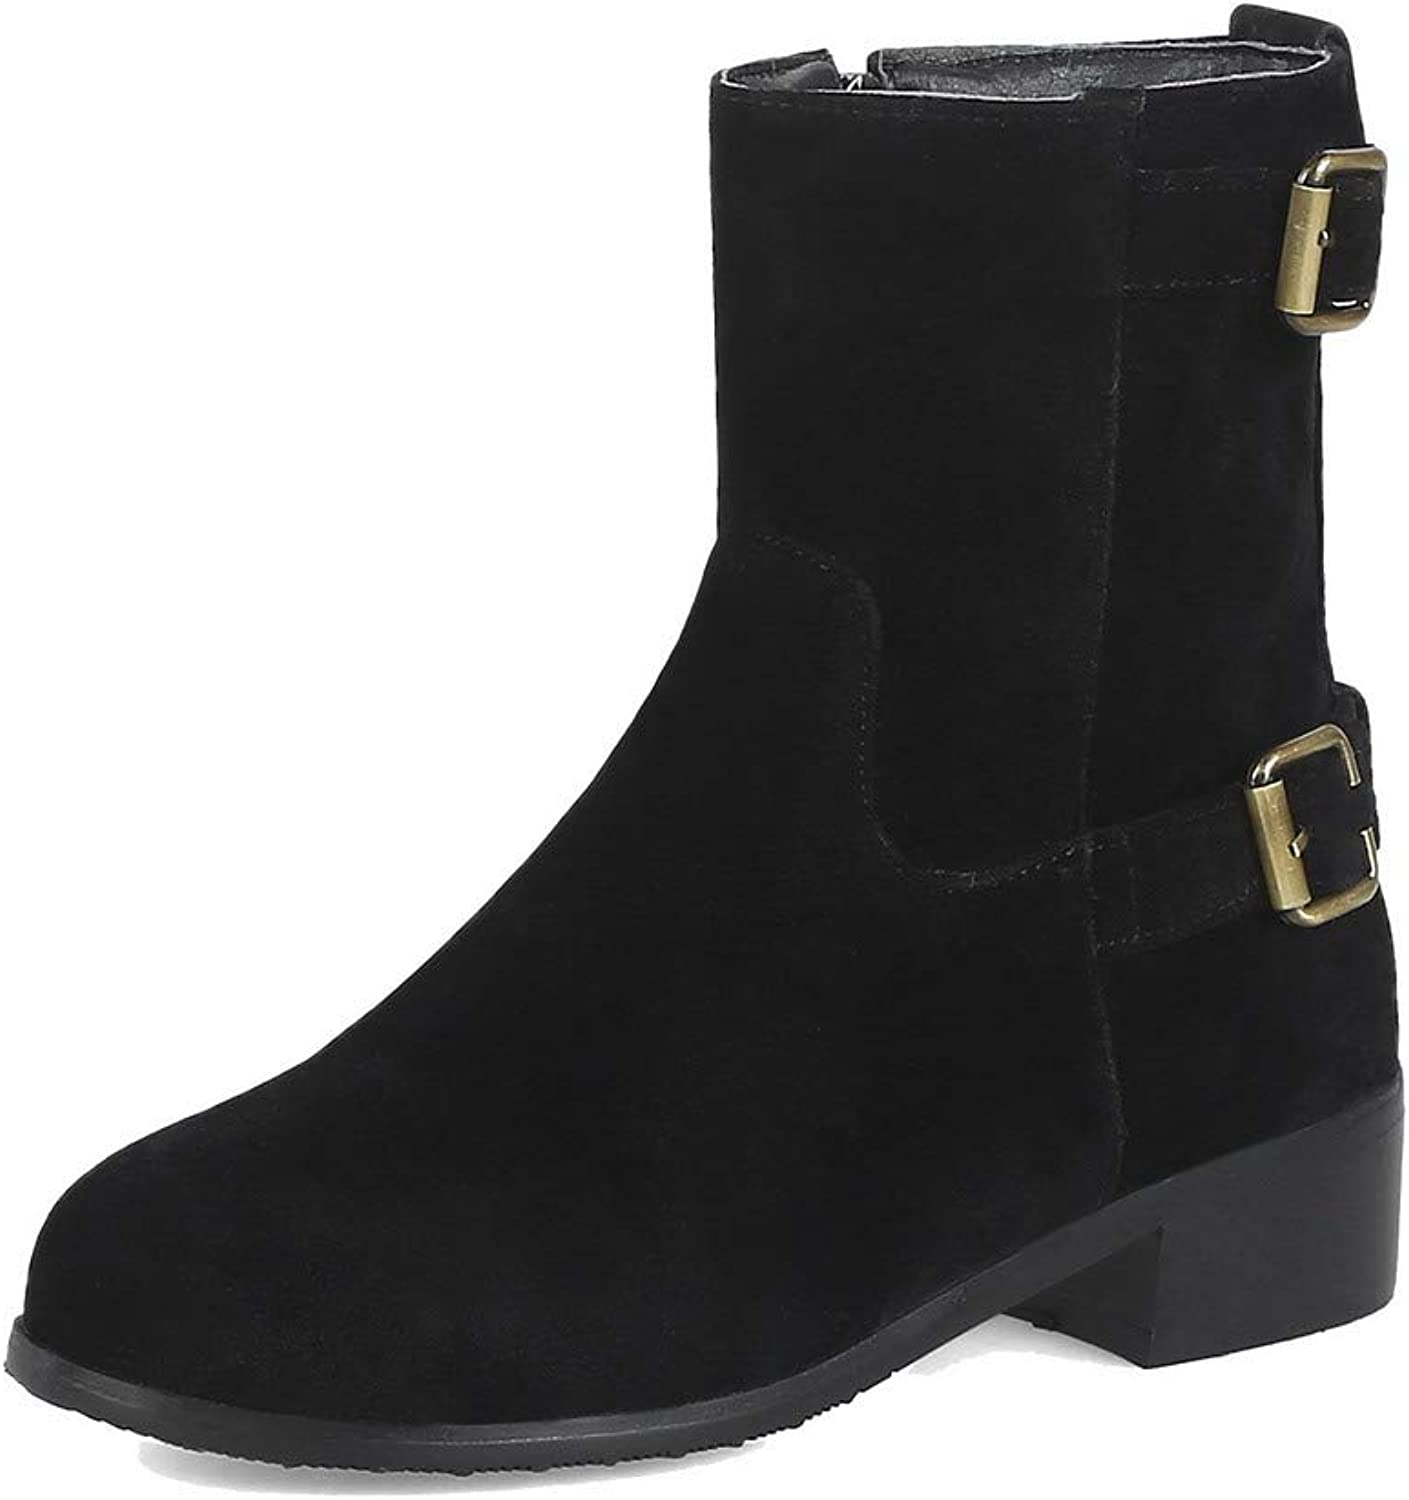 AllhqFashion Women's Zipper Low-Heels Frosted Solid Ankle-High Boots, FBUXD028139